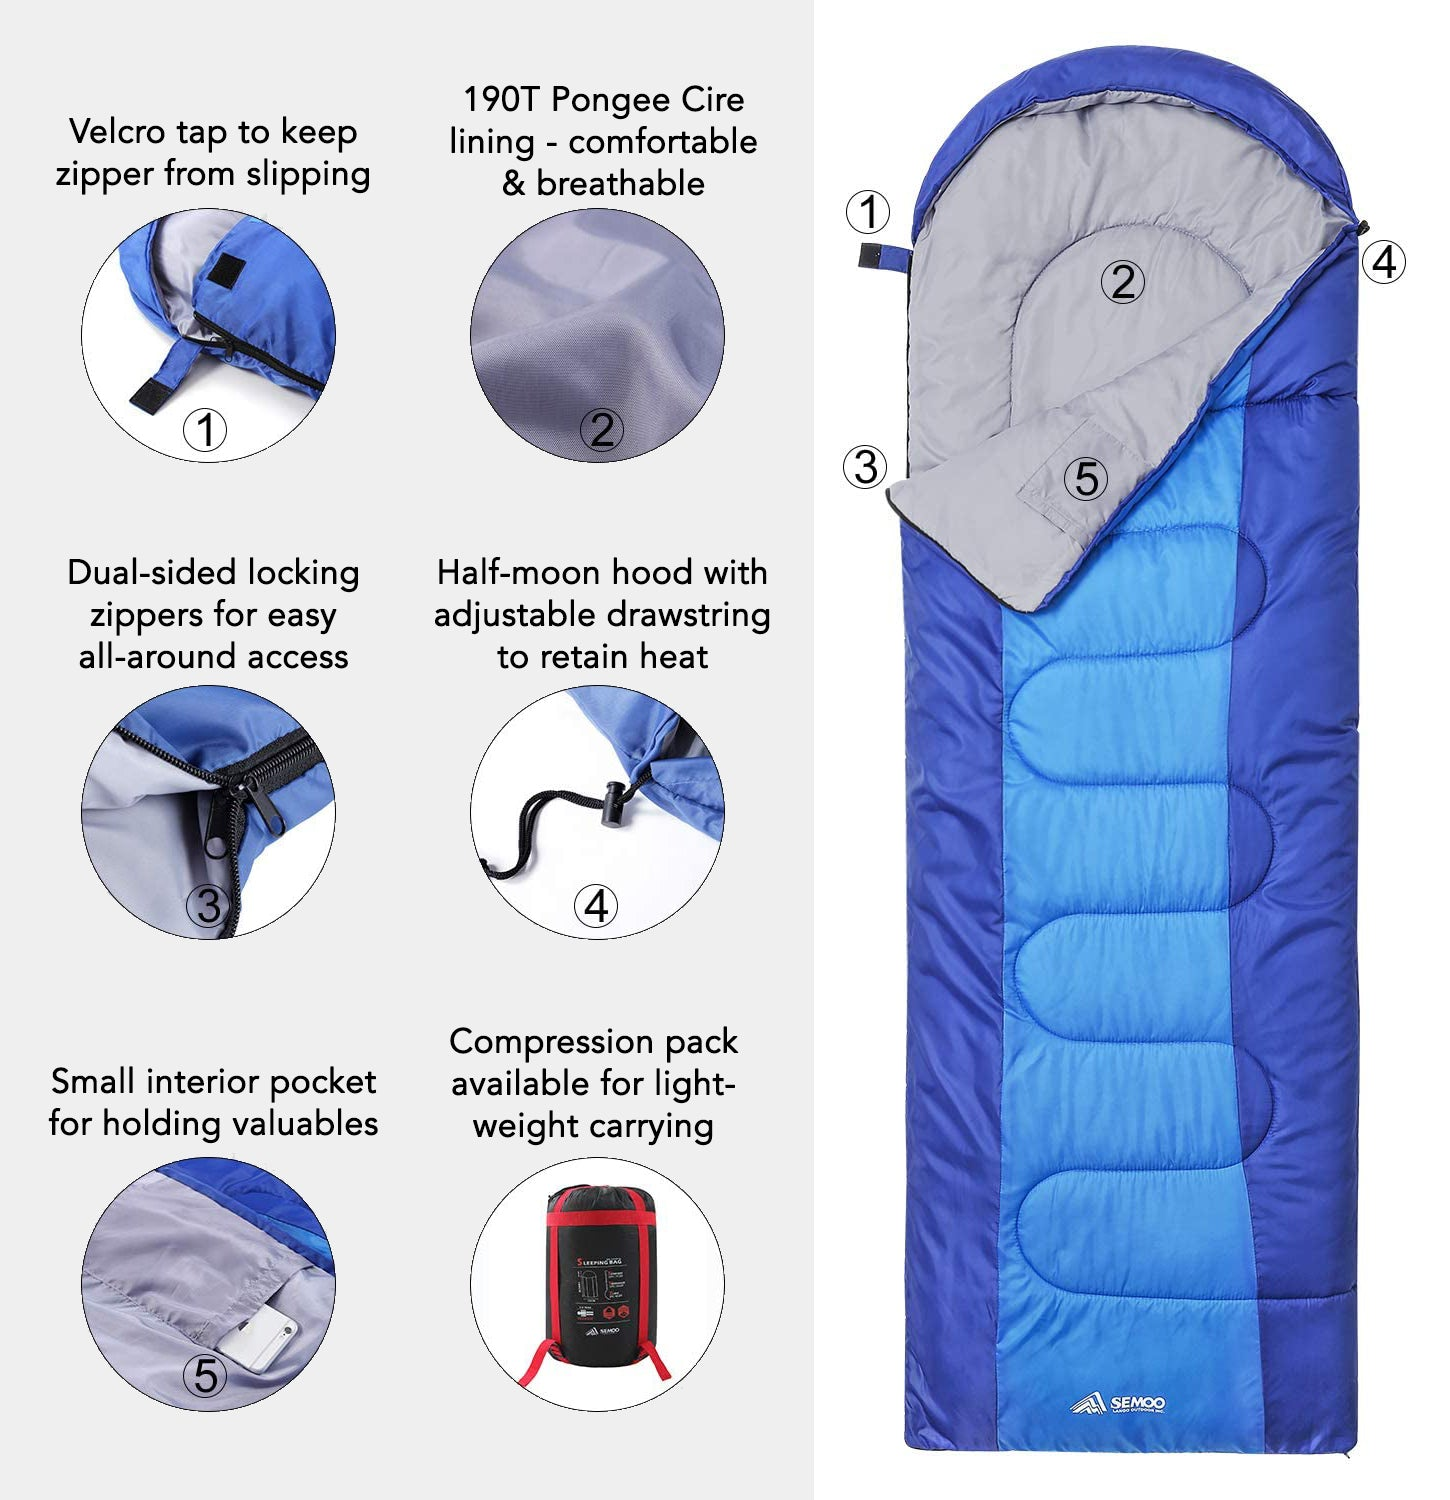 JUNELILY Camping Sleeping Bag for 3 Seasons Summer, Spring, Fall | Lightweight & Waterproof for Adult's & Kid's Camping Gear Equipment | Camping, Travel, Beach, Outdoors